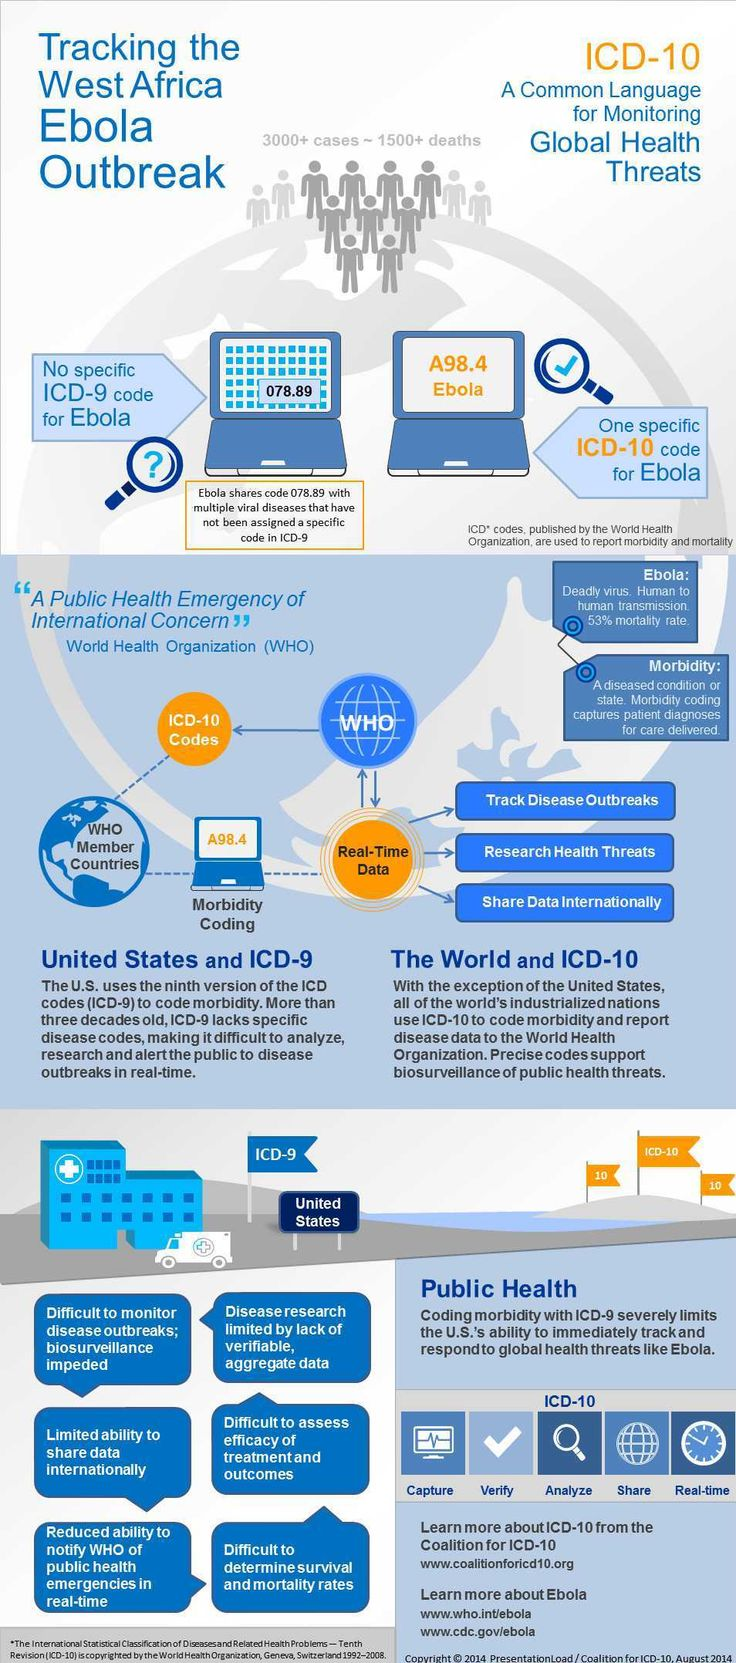 88 best icd 10 images on pinterest icd 10 medical coder and 10 could help track ebola outbreak hit consultant xflitez Choice Image